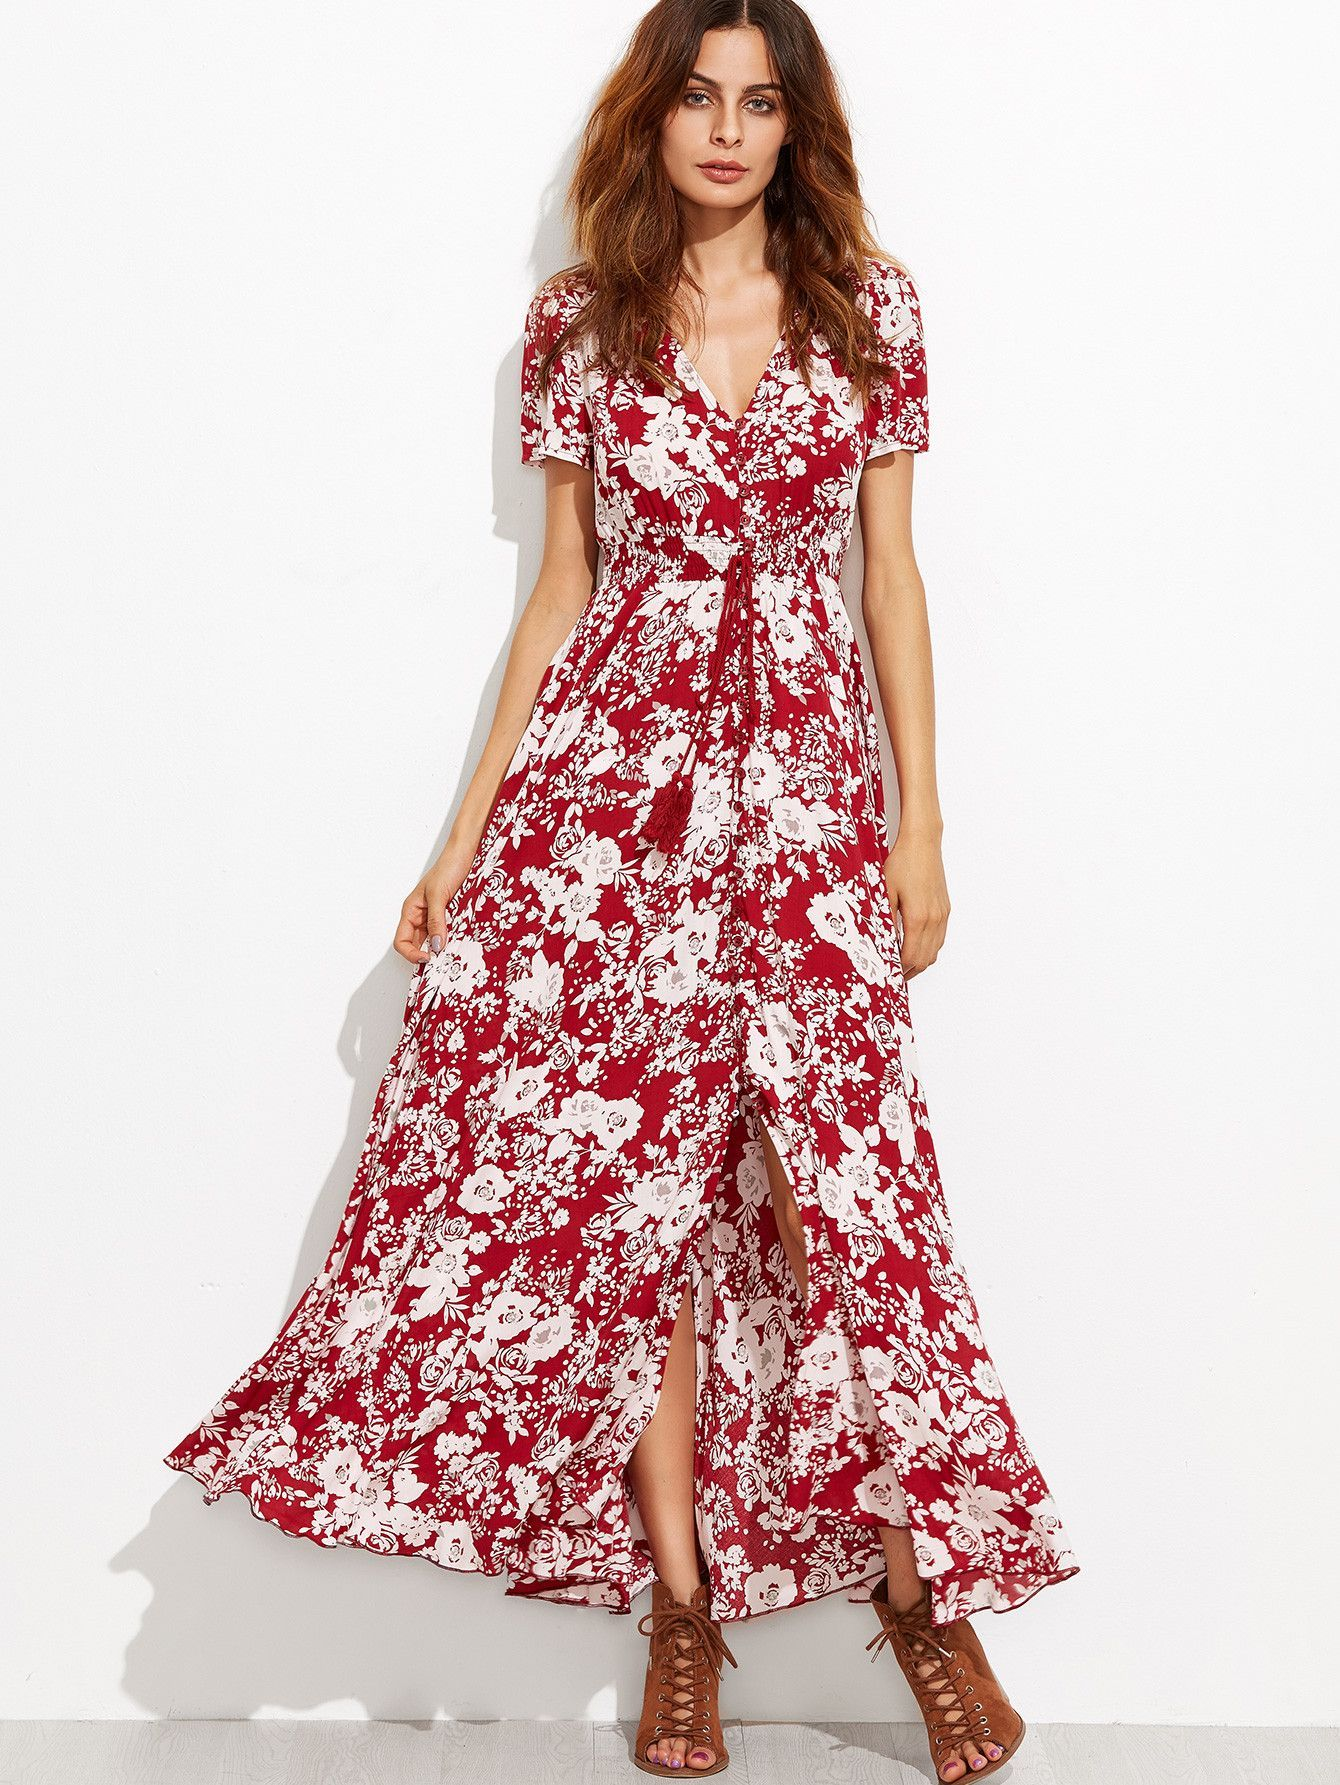 403fbbed2ee2 Fabric: Fabric has no stretch Season: Summer Type: Wrap Pattern Type: Floral  Sleeve Length: Short Sleeve Color: Burgundy Dresses Length: Maxi Style:  Casual, ...